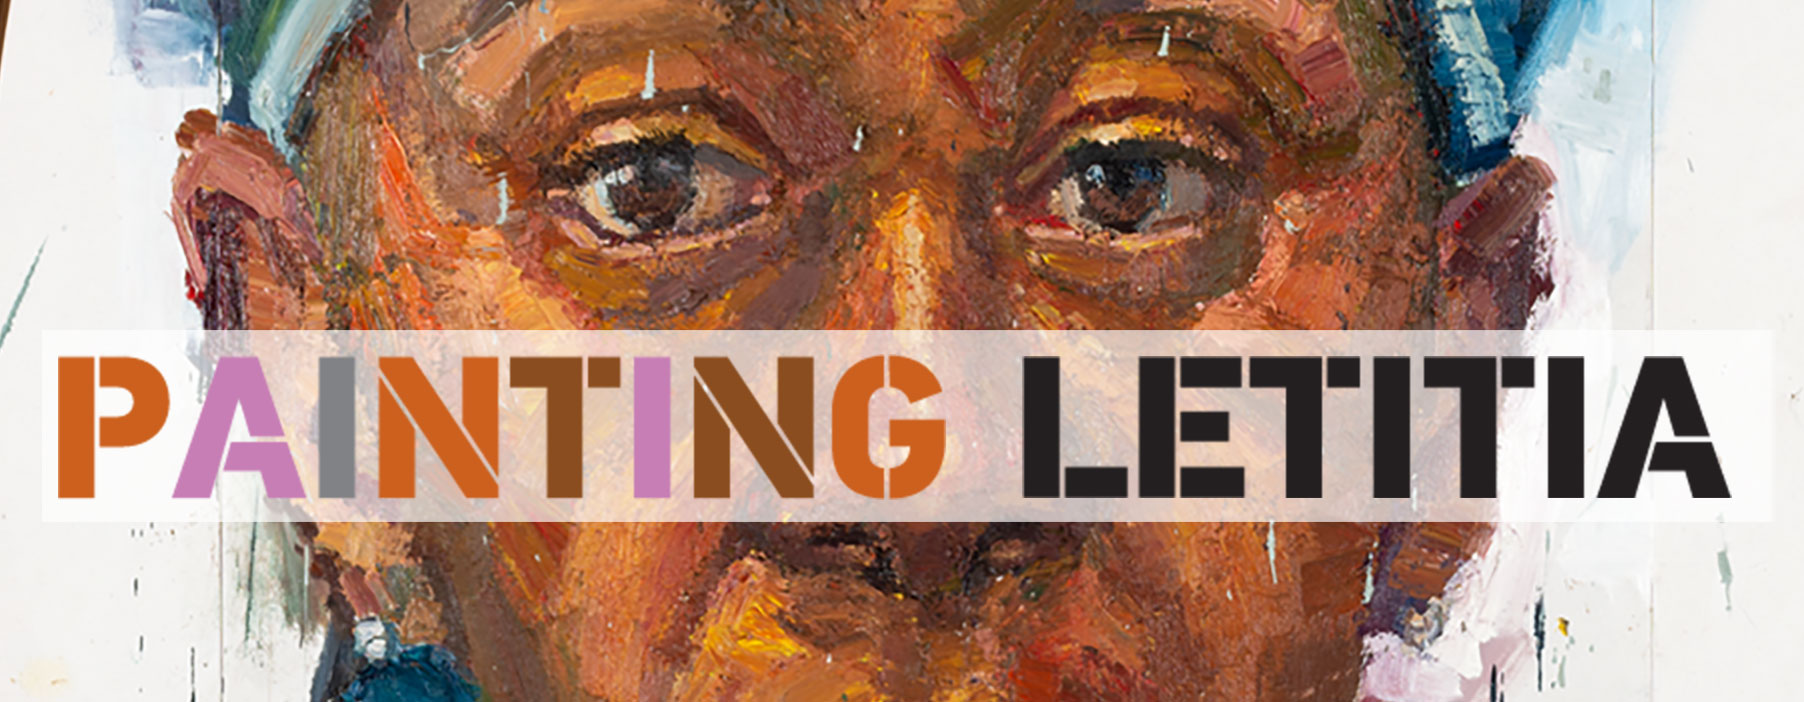 Painting Letitia Cfa Magazine Blog Archive Boston University